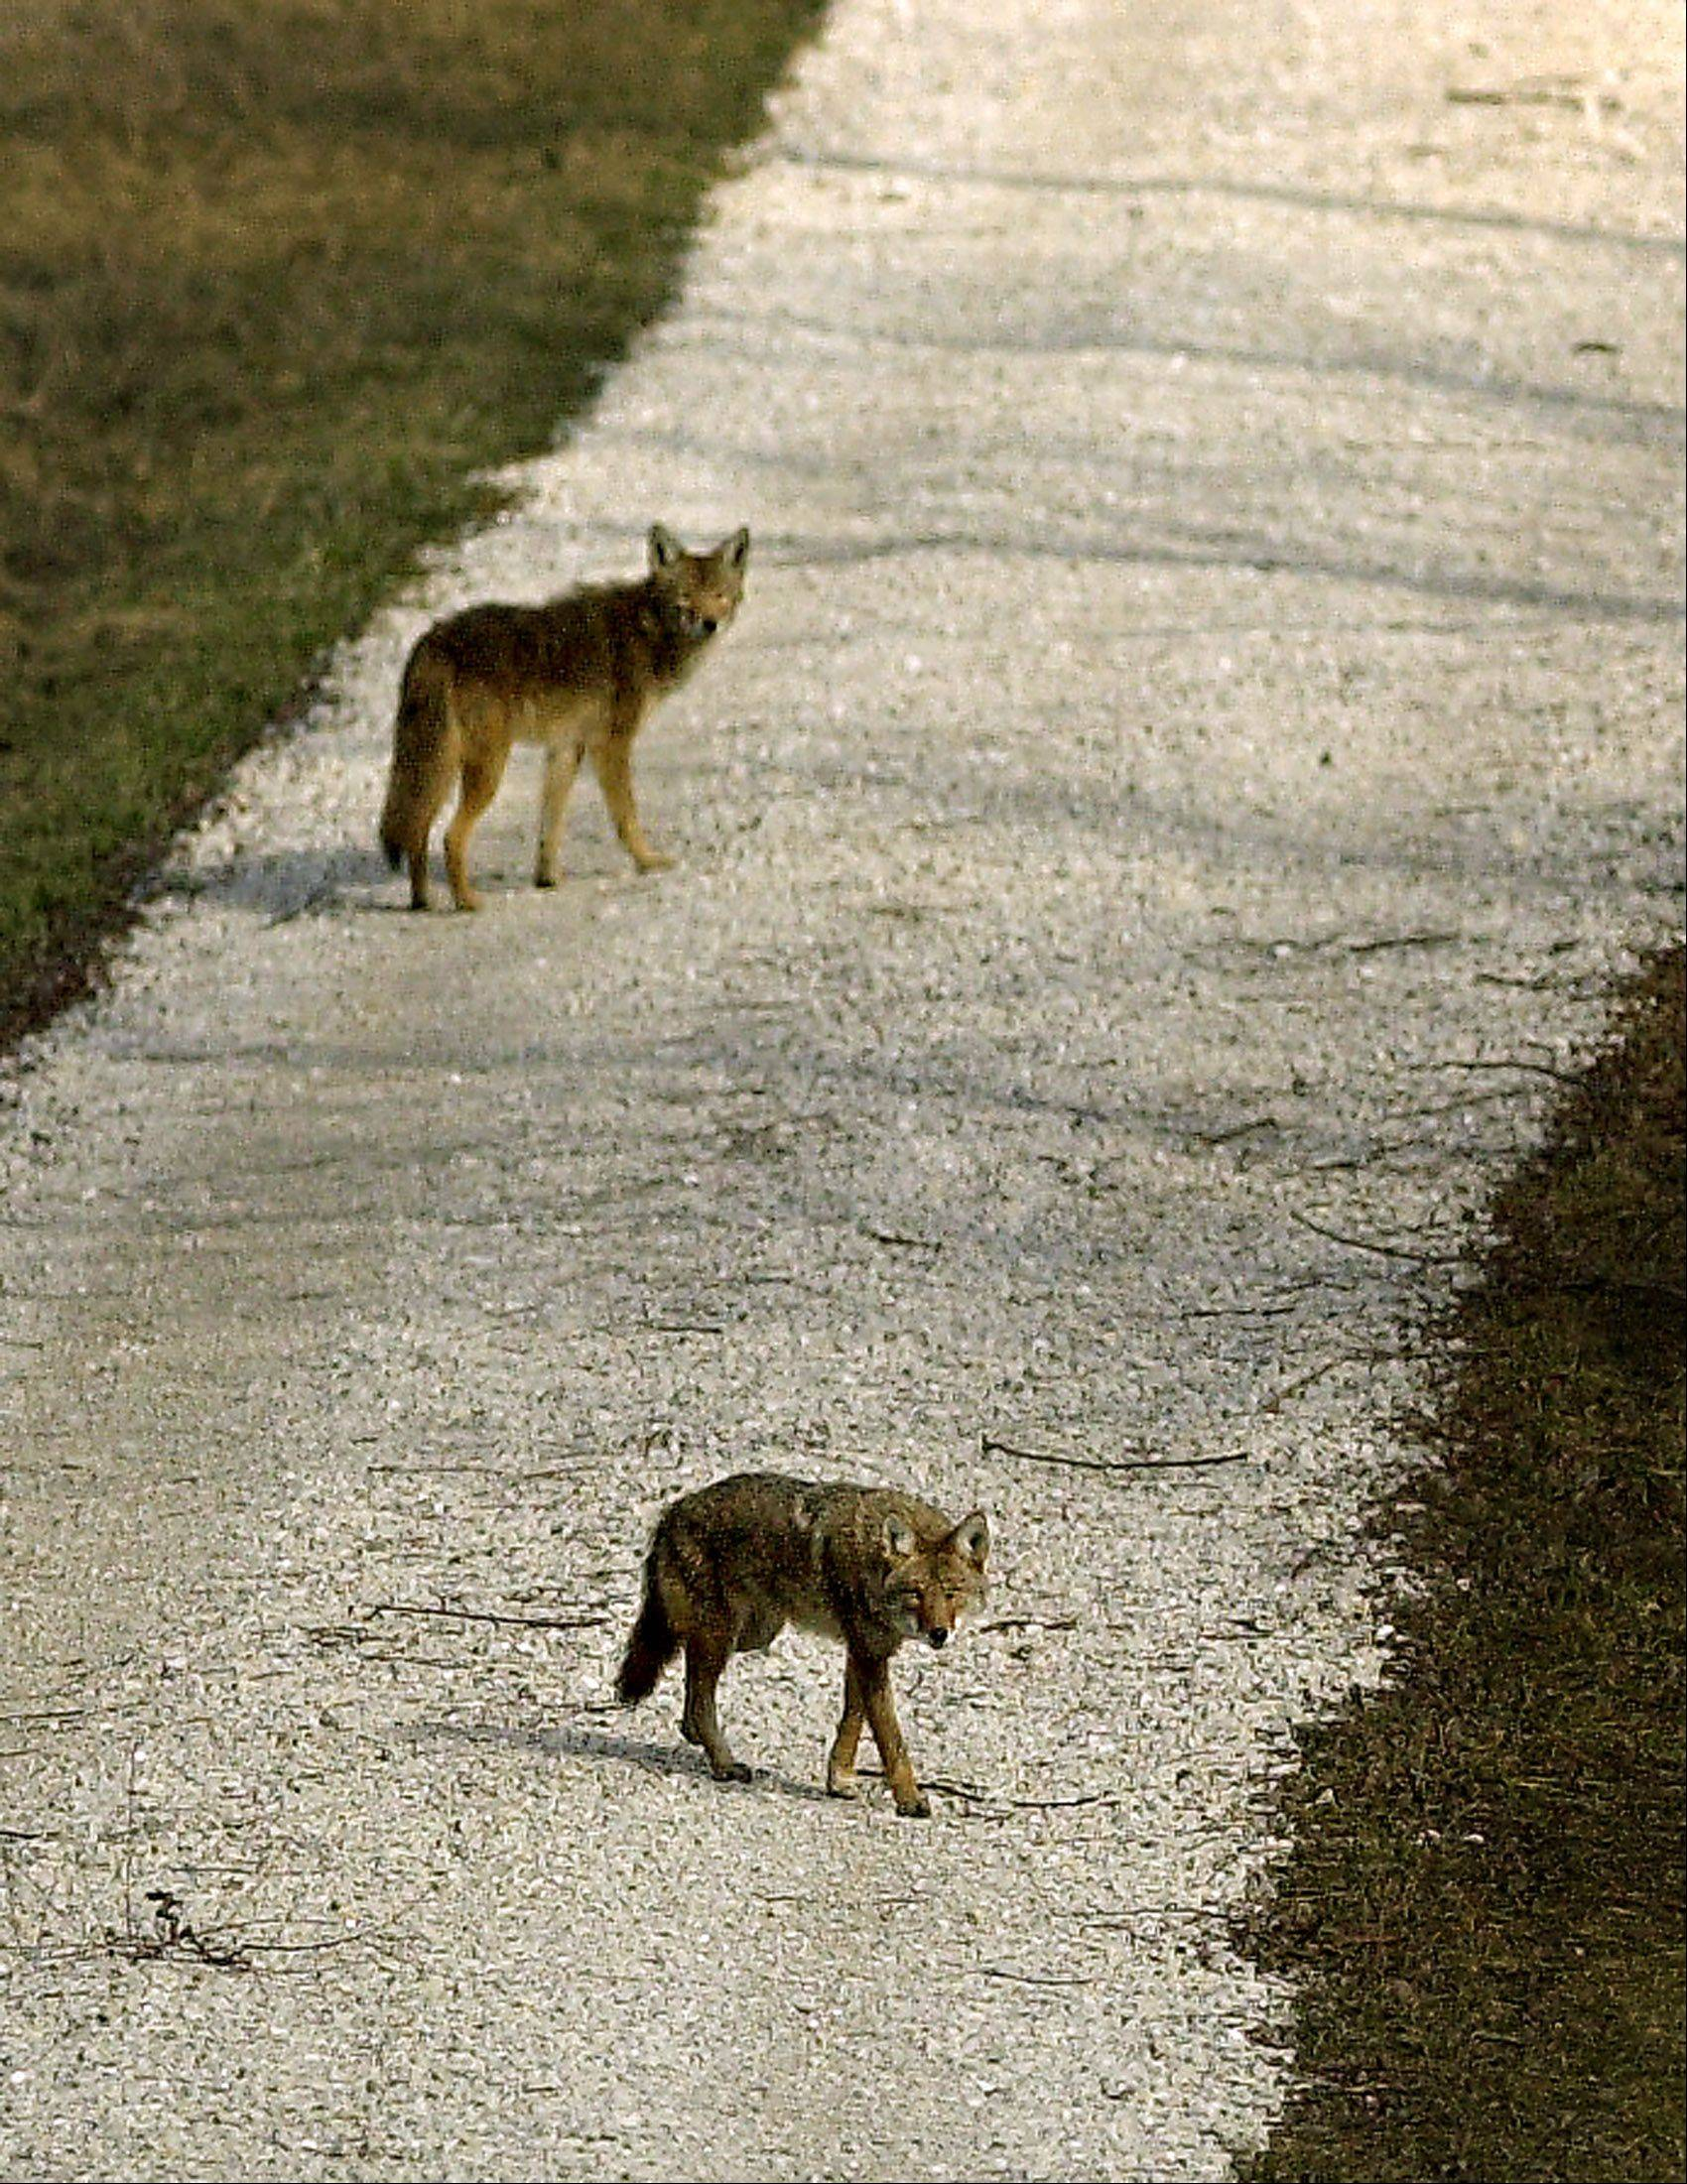 If you see a coyote, Wheaton officials suggest scaring it away by making noise, throwing things at it or spraying it with a garden hose.